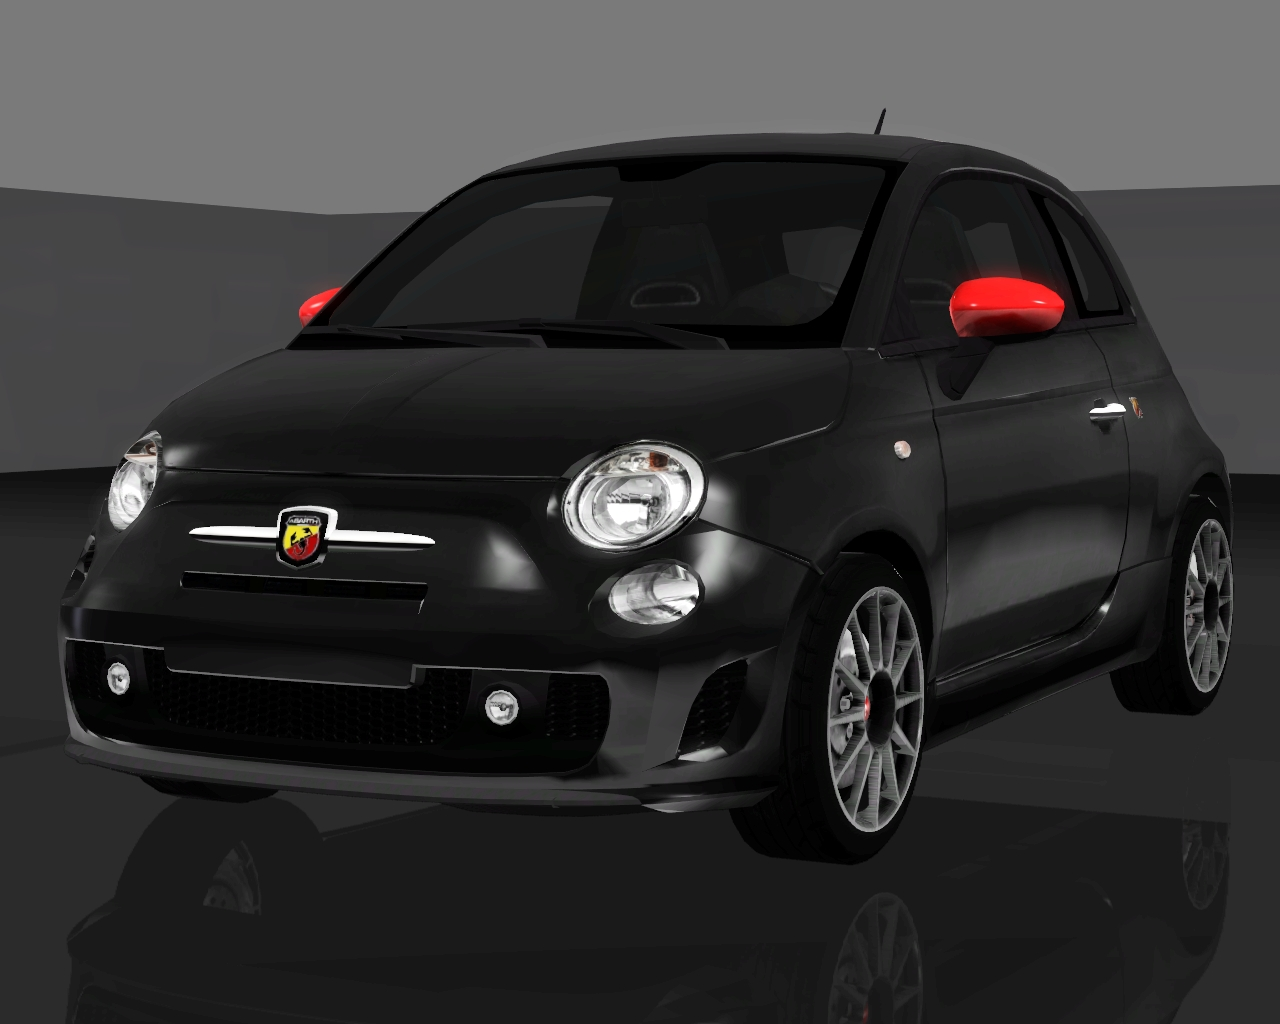 2012 Fiat 500 Abarth by Fresh-Prince